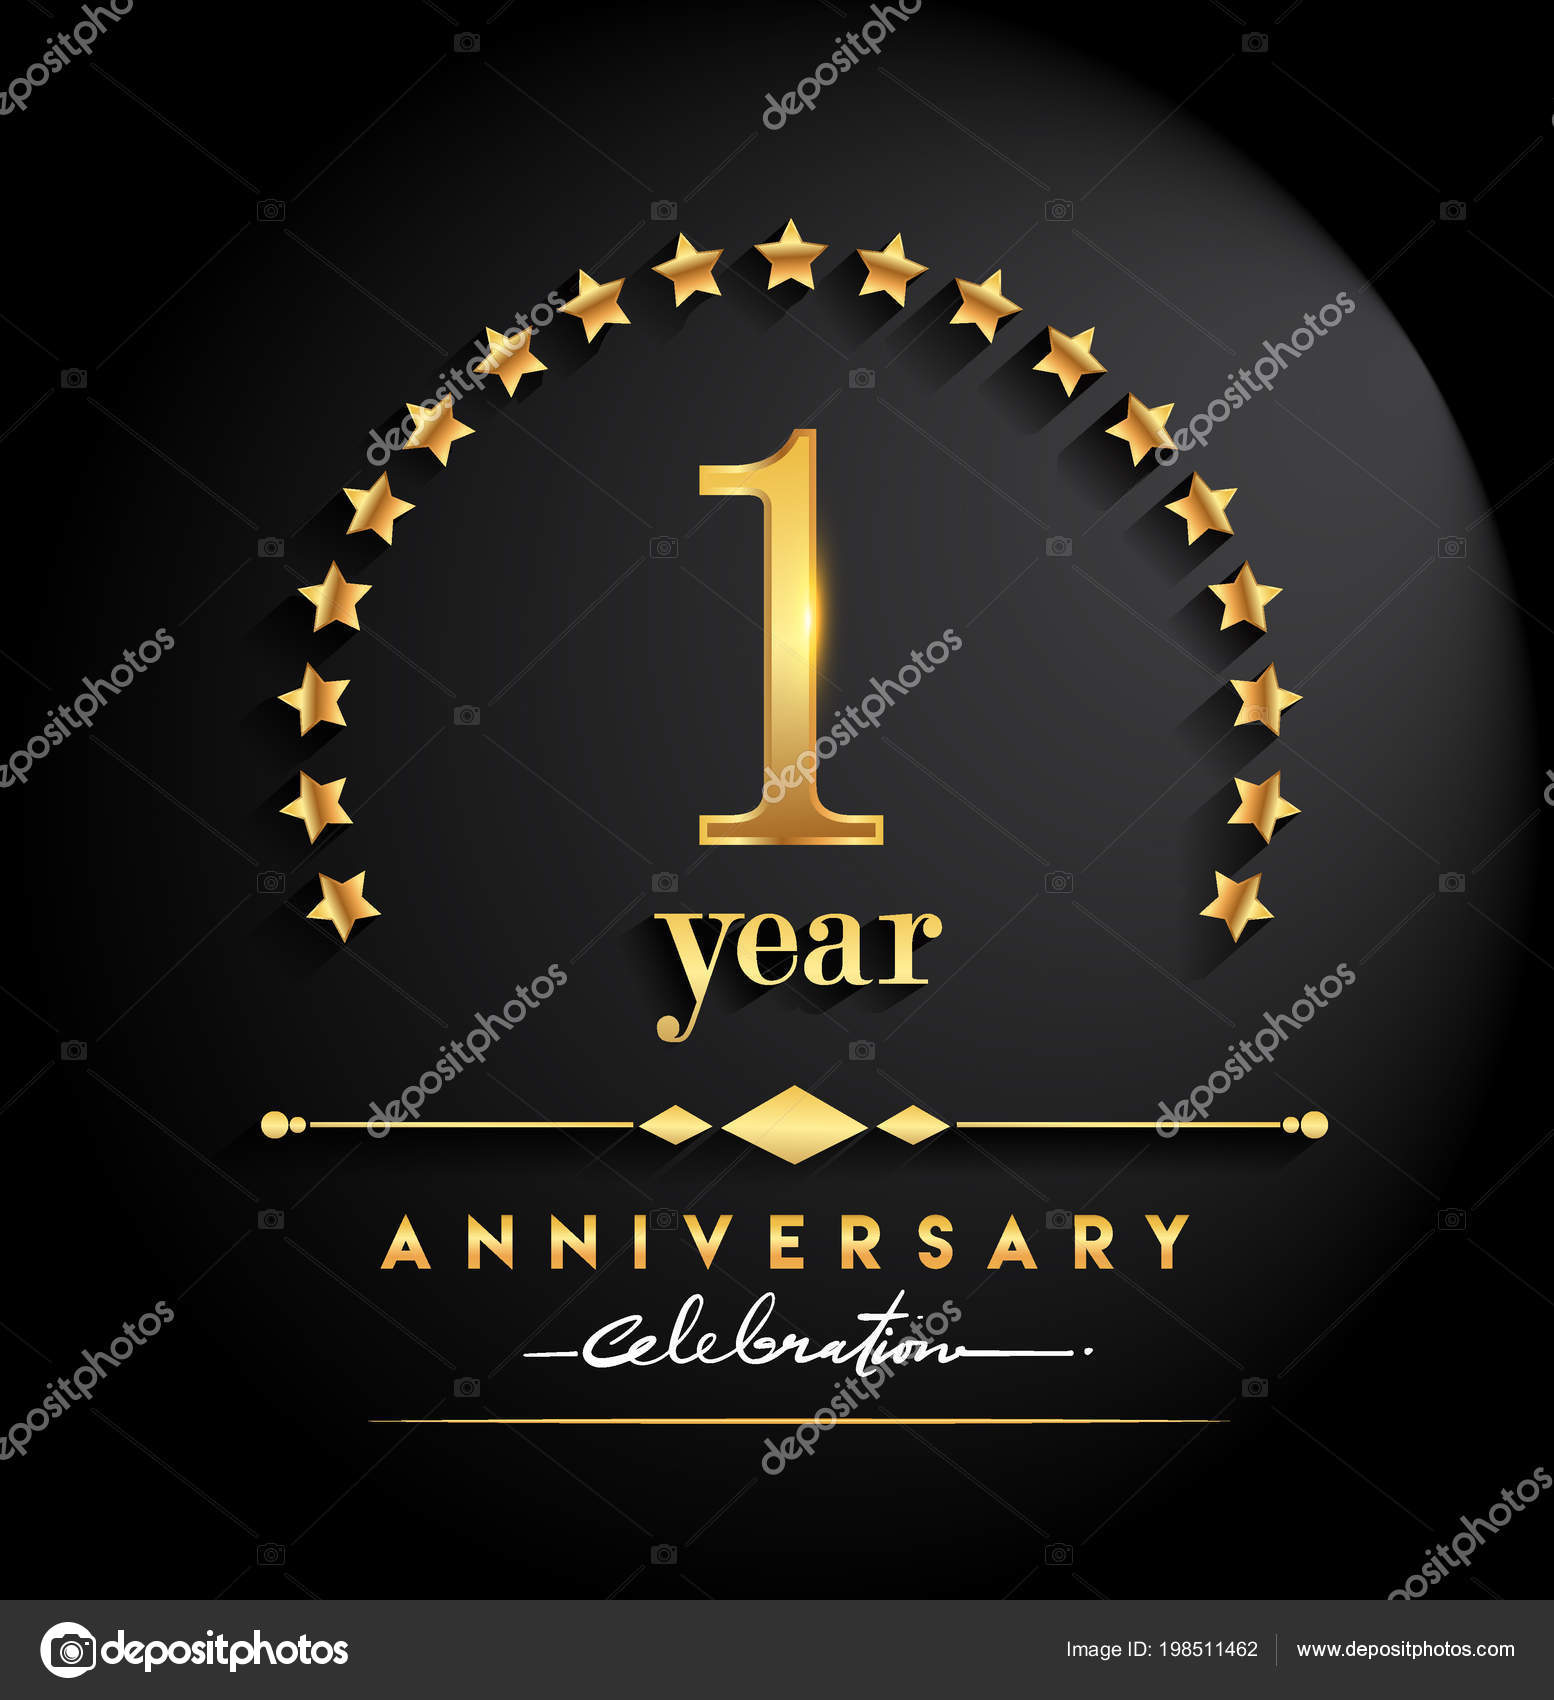 Year anniversary celebration anniversary logo stars elegant golden 1 year anniversary celebration anniversary logo with stars and elegant golden color isolated on black background vector design for celebration invitation stopboris Image collections